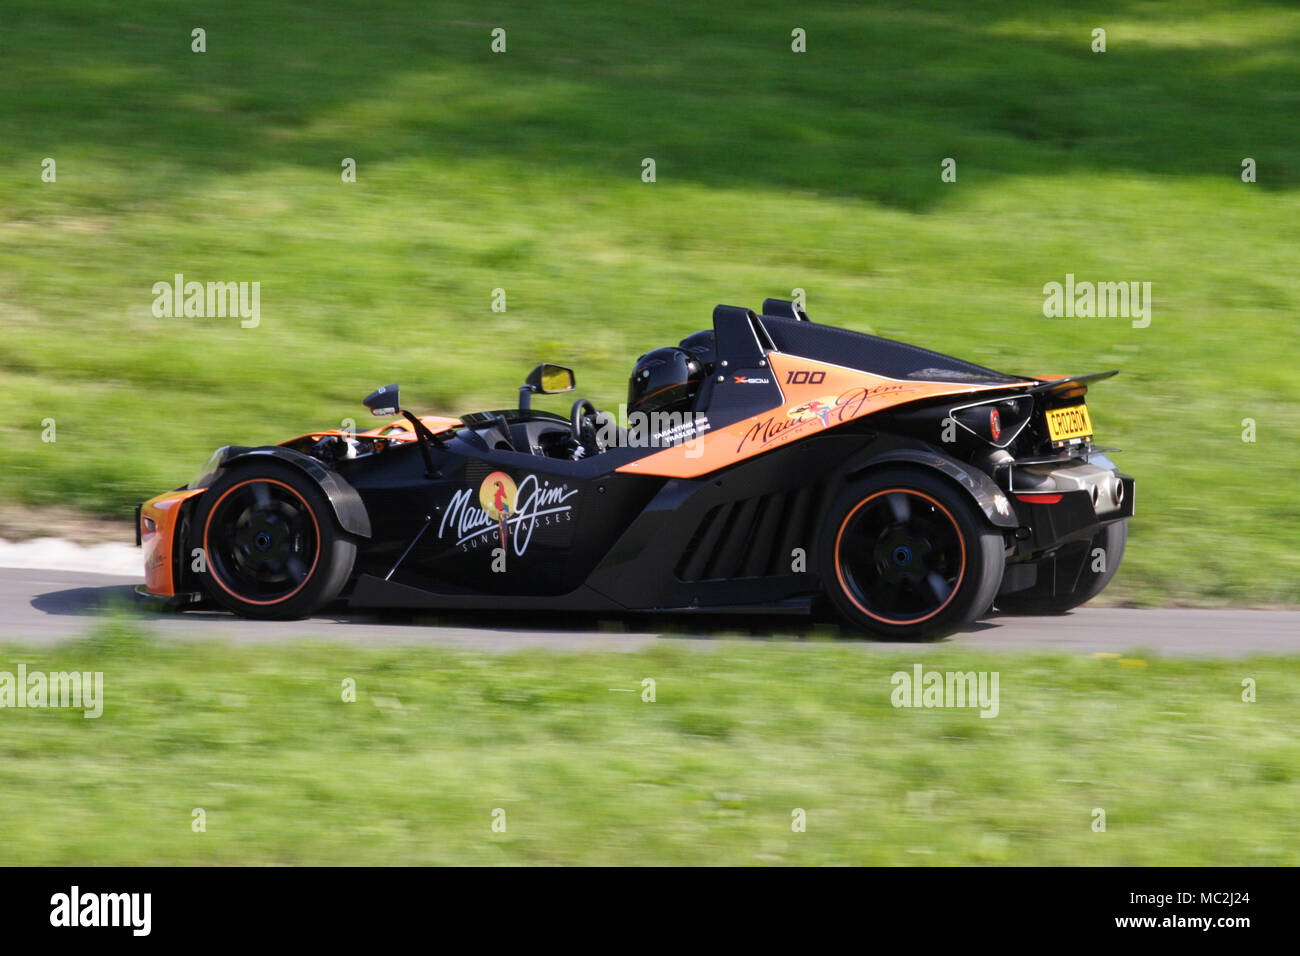 KTM X-Bow lightweight road legal track car or sportscar. - Stock Image